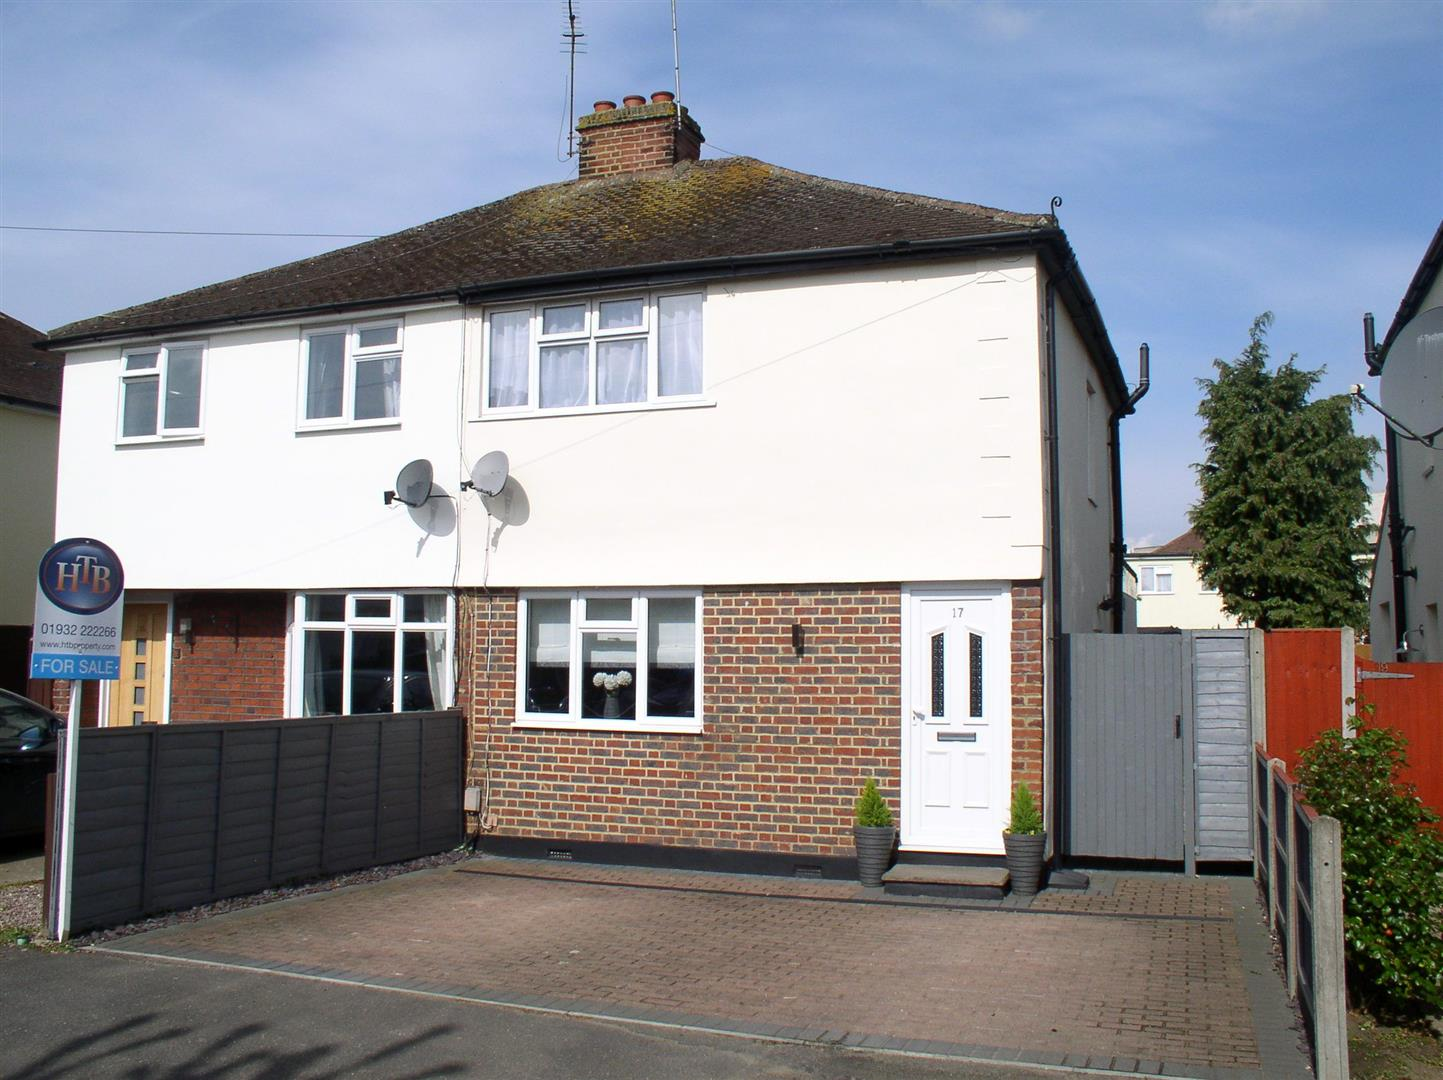 2 Bedrooms House for sale in Thrupps Avenue, Hersham, Walton-On-Thames